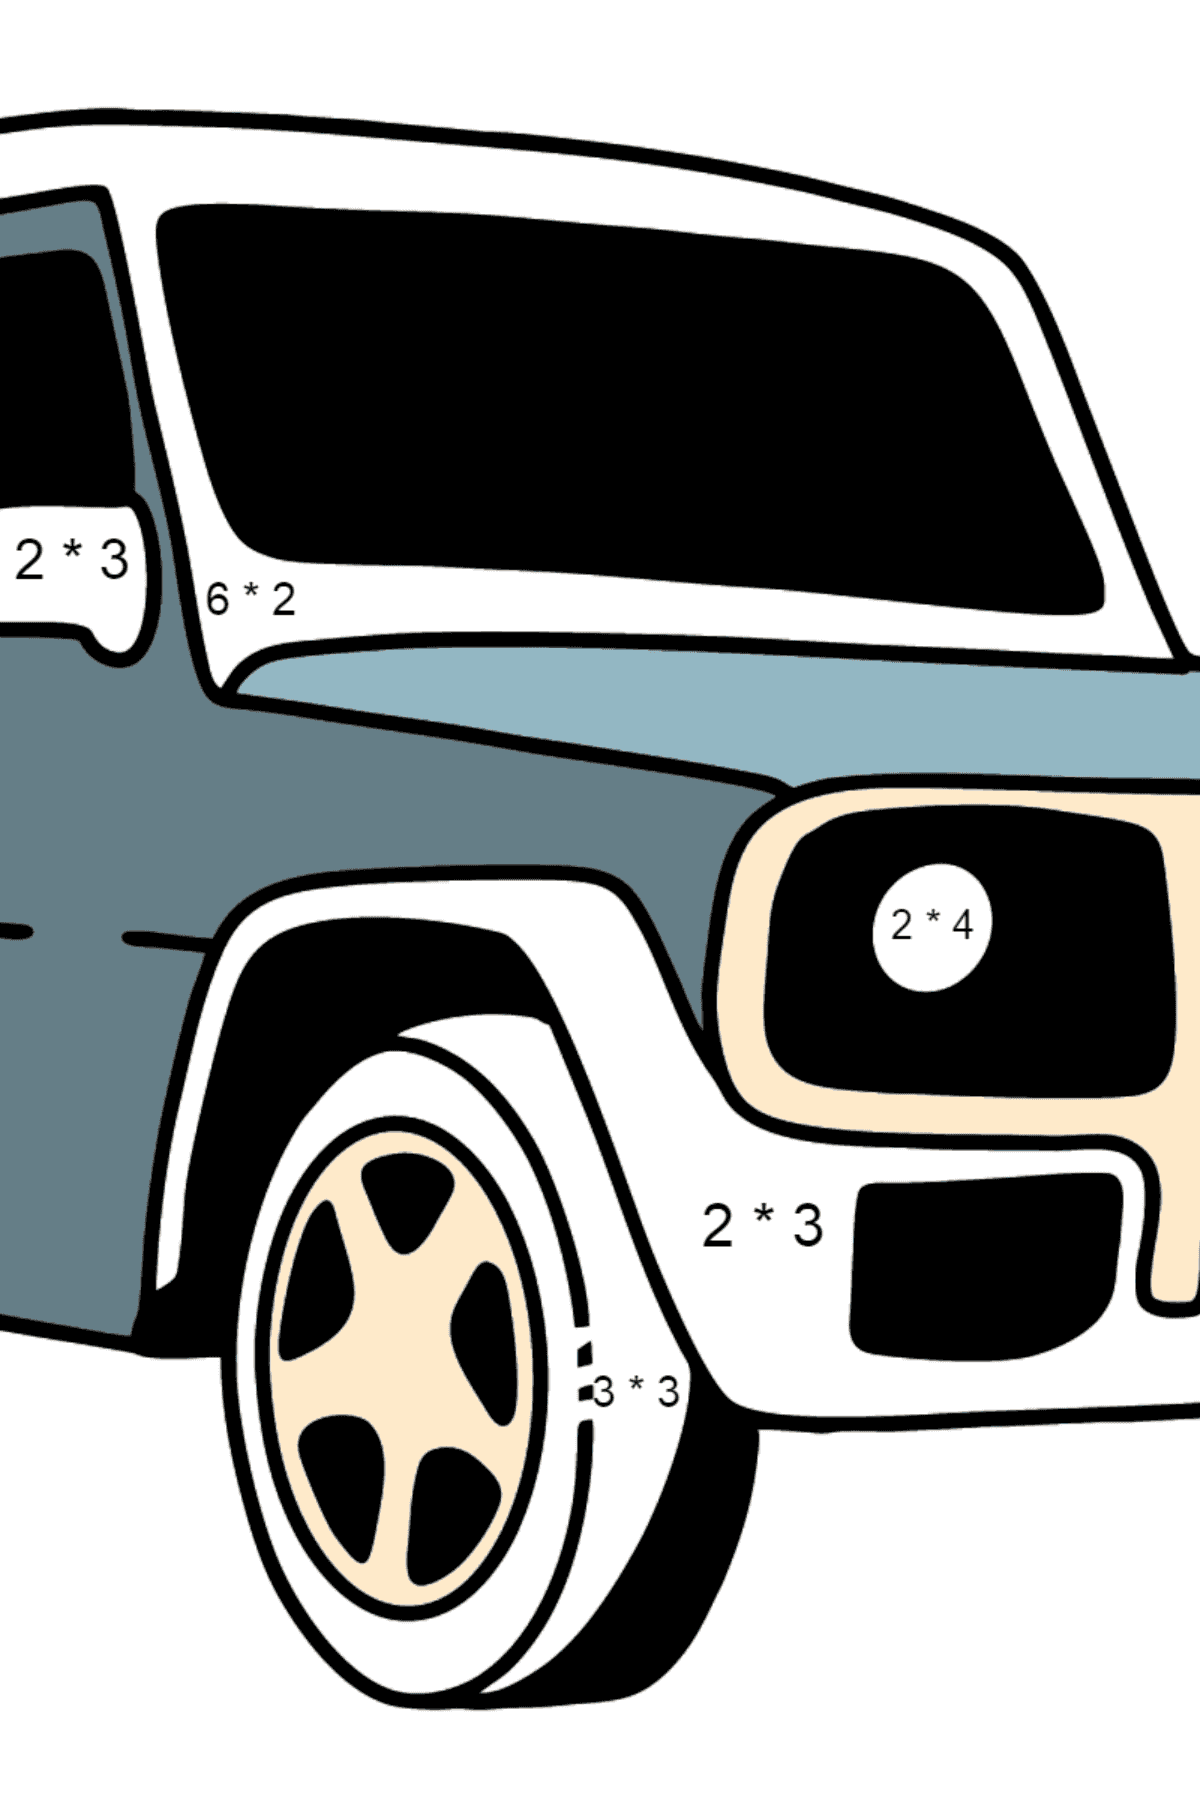 Mercedes-Benz G-Class SUV coloring page - Math Coloring - Multiplication for Kids